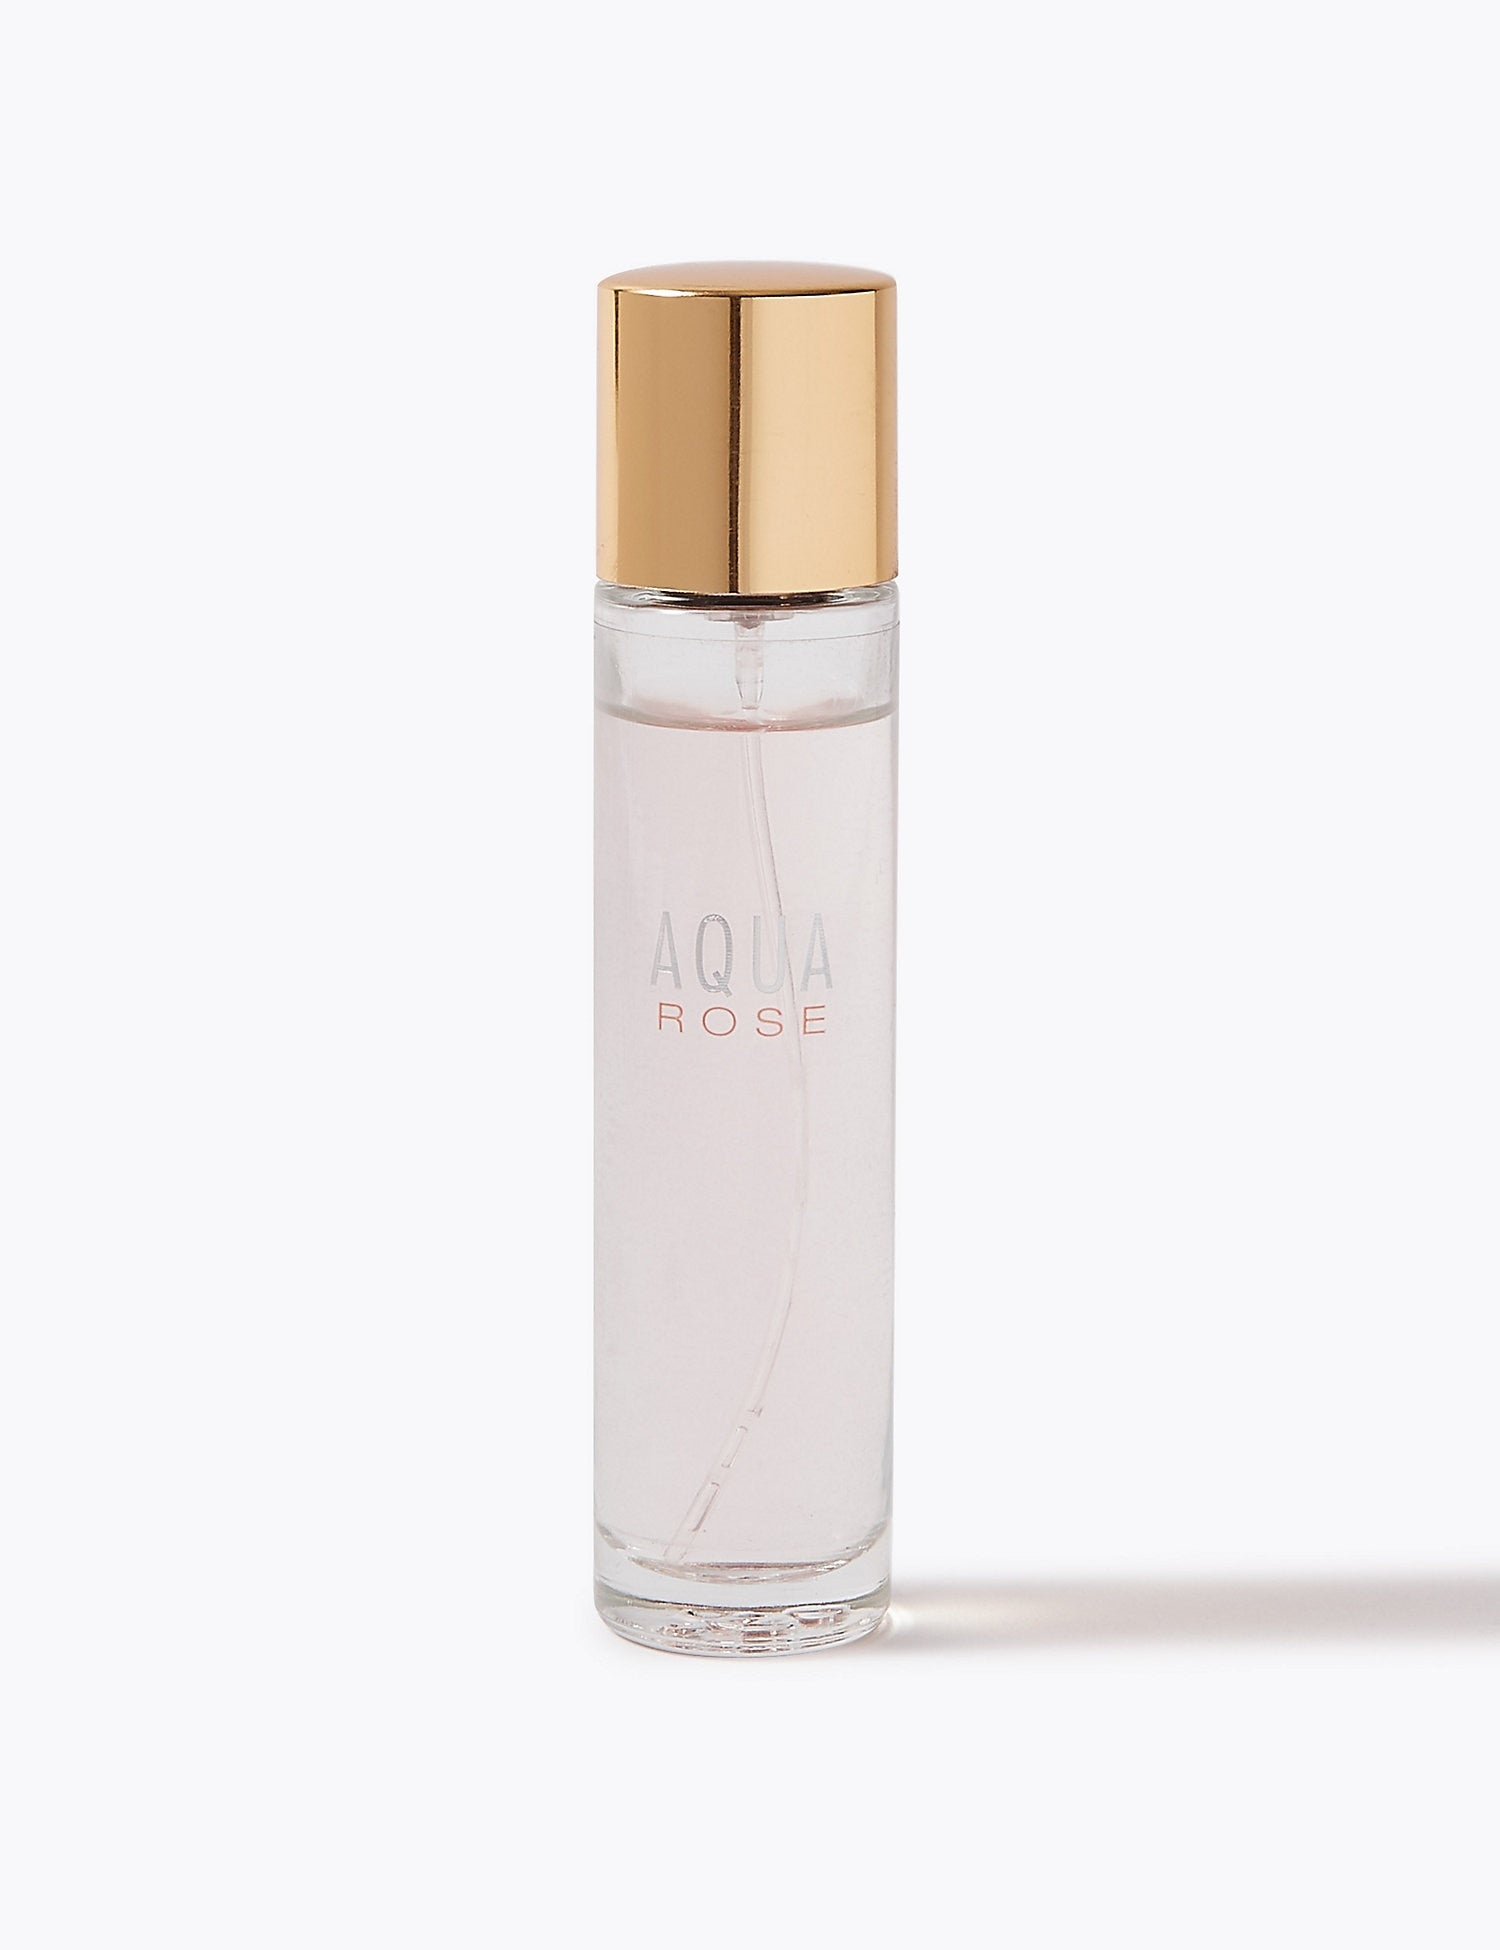 Aqua Rose Eau de Toilette 25ml